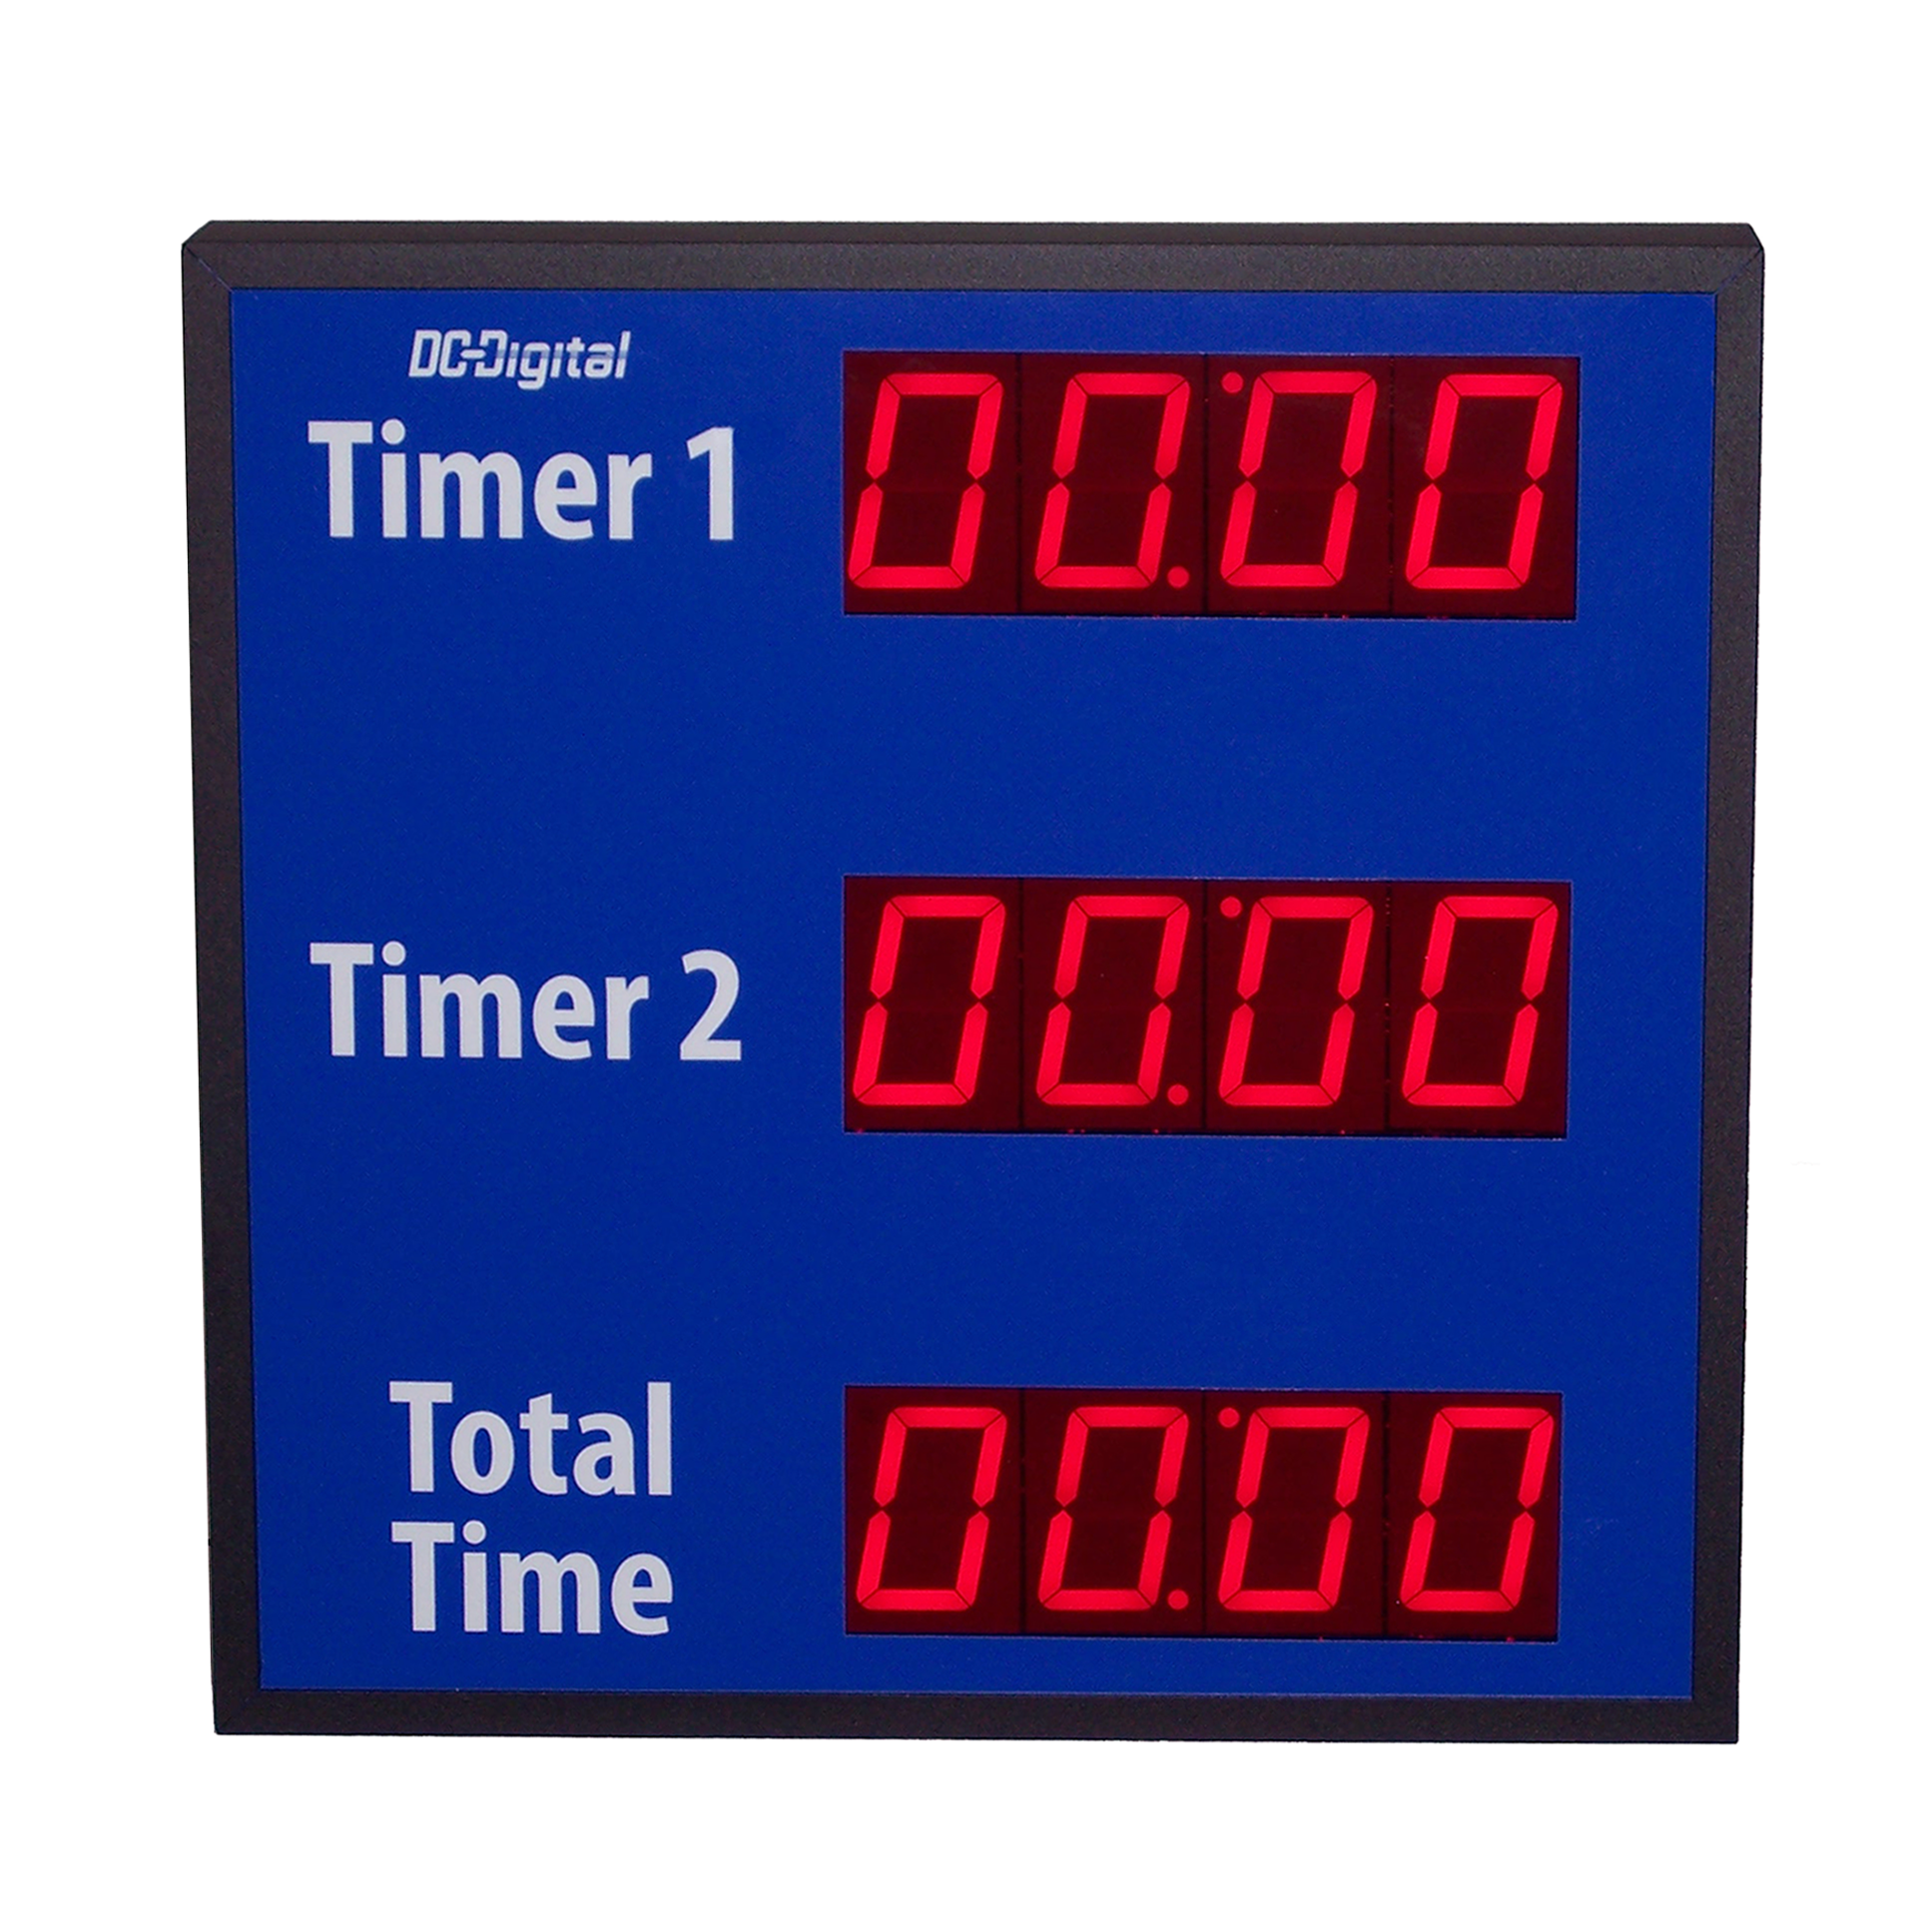 2 timers in 1 with total time for dual assembly line processes